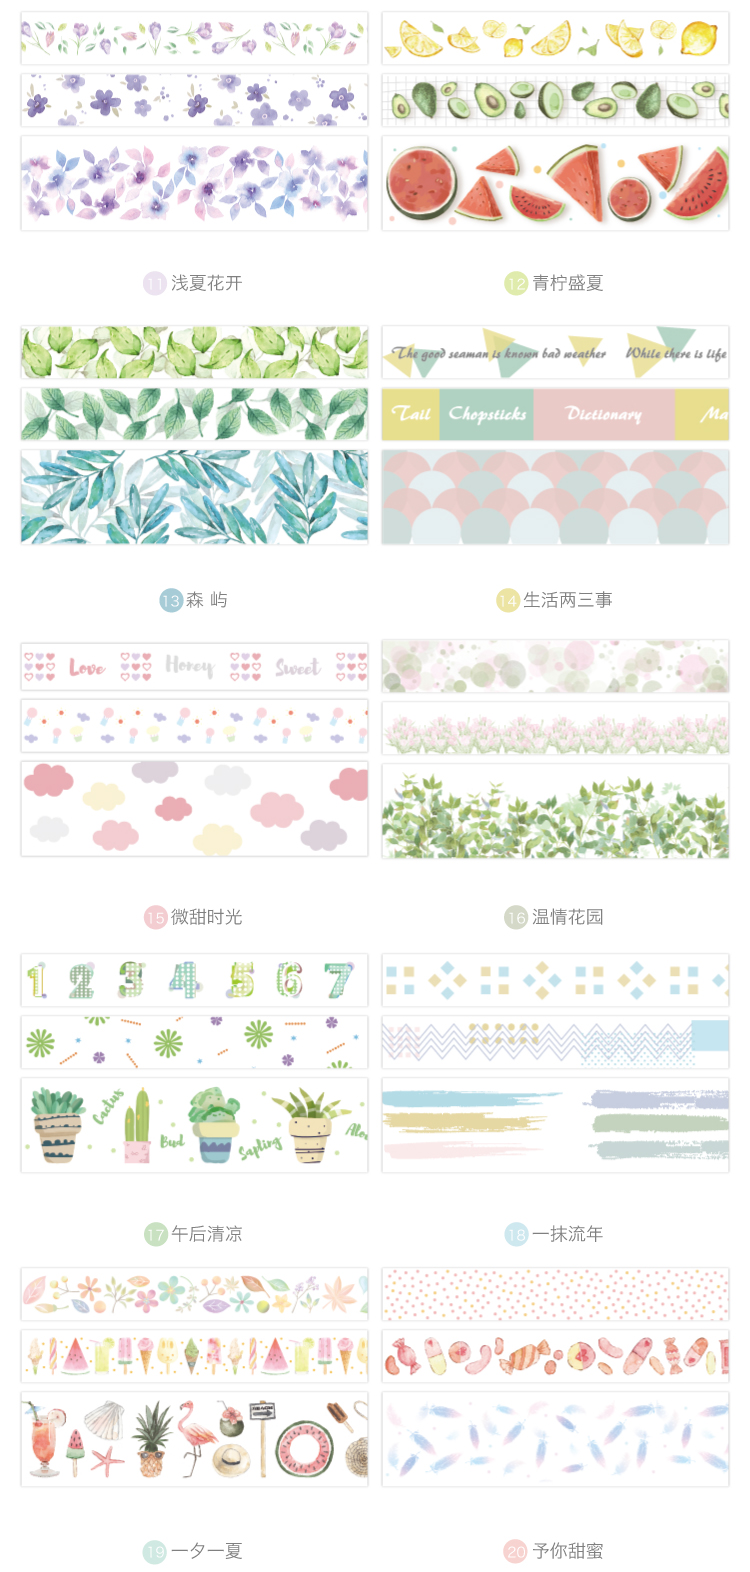 3 Pcs Pack Plant Animal Food Seven Points Girl Heart Washi Tape Set Adhesive Tape Diy Scrapbooking Sticker Label M Washi Tape Washi Tape Set Scrapbook Stickers